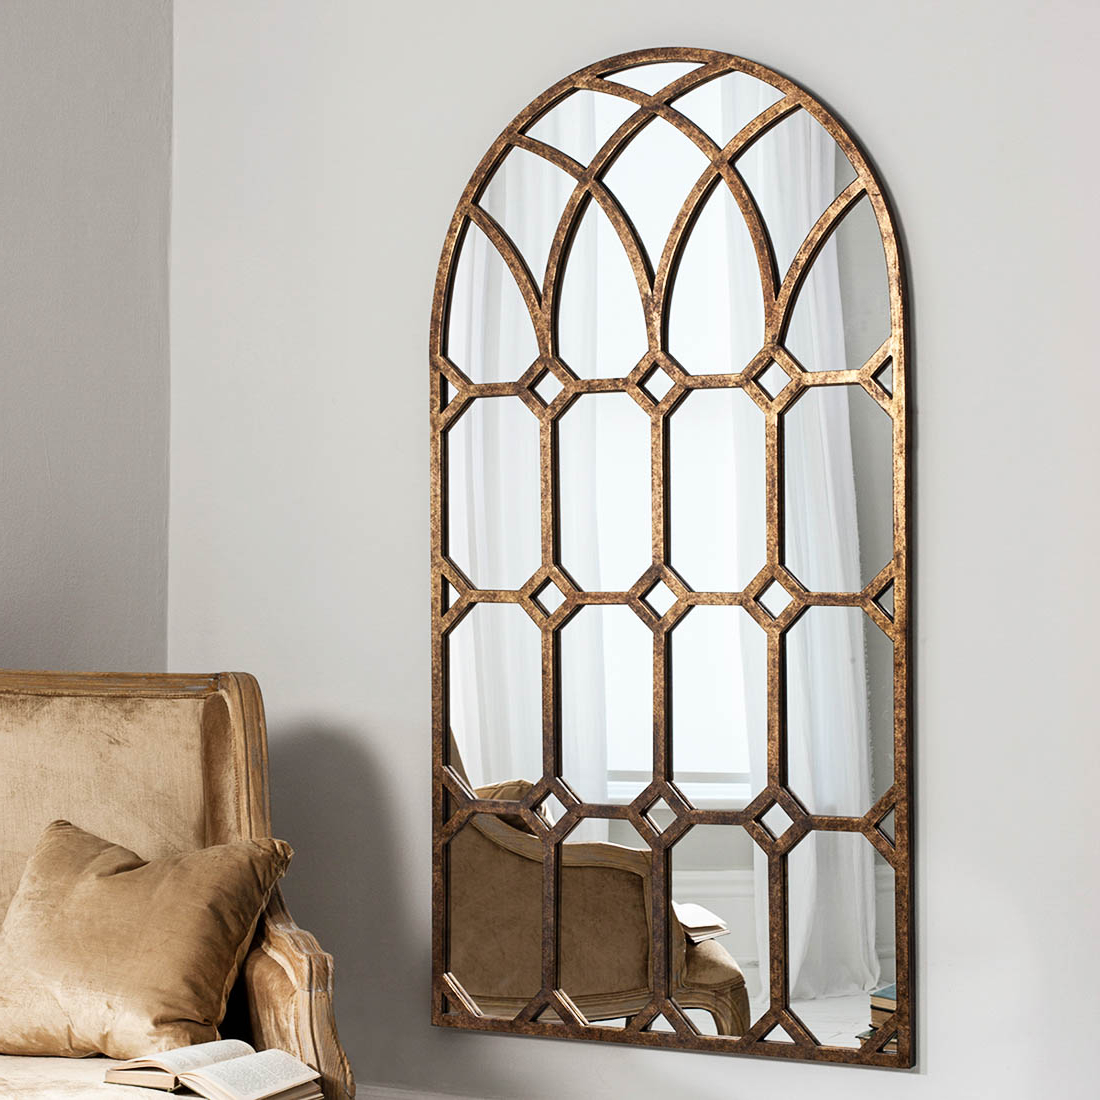 Window Wall Mirrors Pertaining To Most Up To Date Bronze Gothic Arched Window Wall Mirror (View 6 of 20)